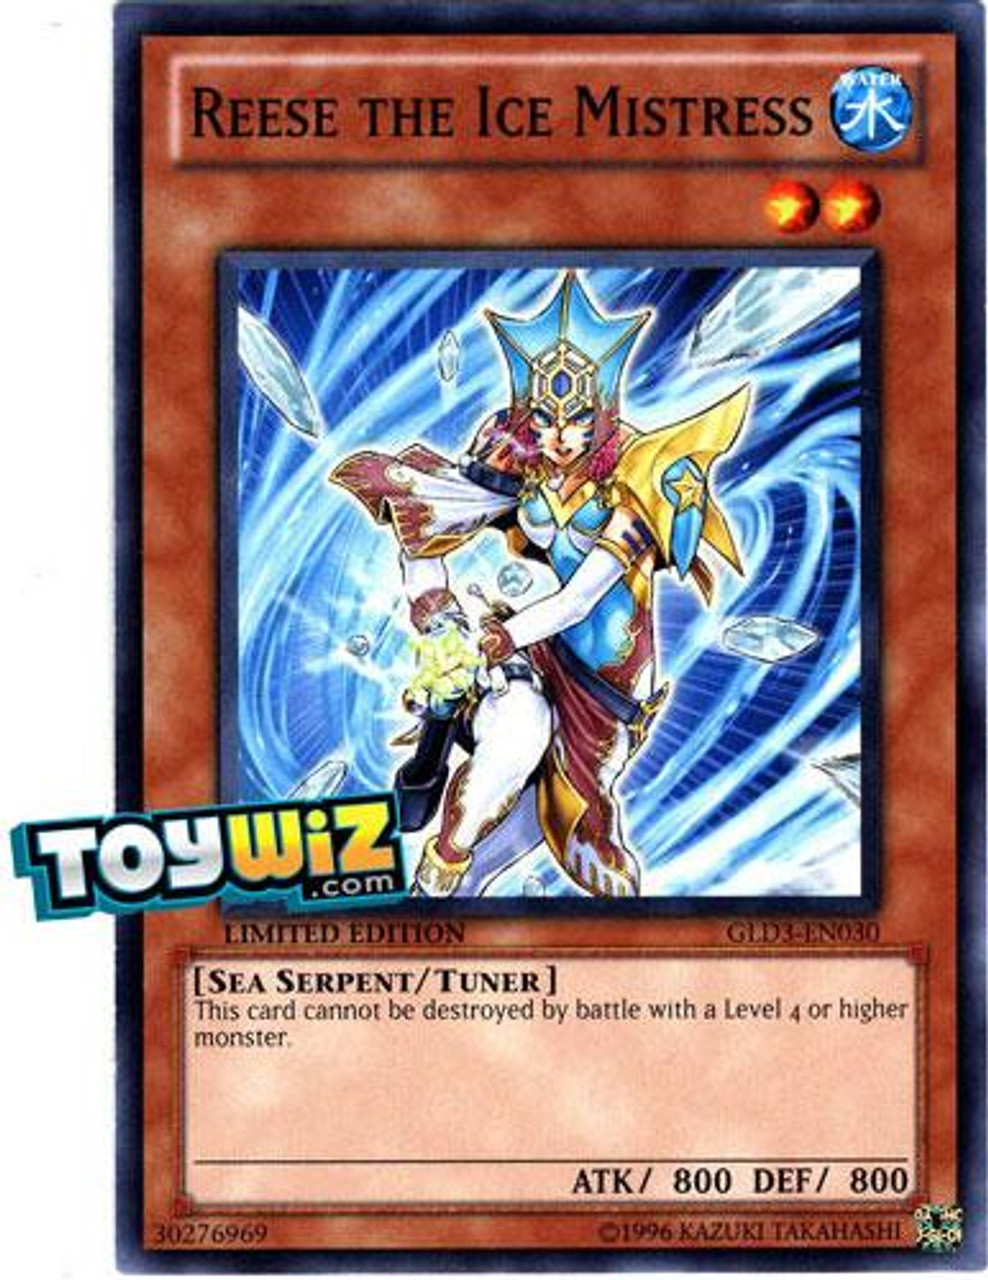 YuGiOh Gold Series 3 2010 Common Reese the Ice Mistress GLD3-EN030